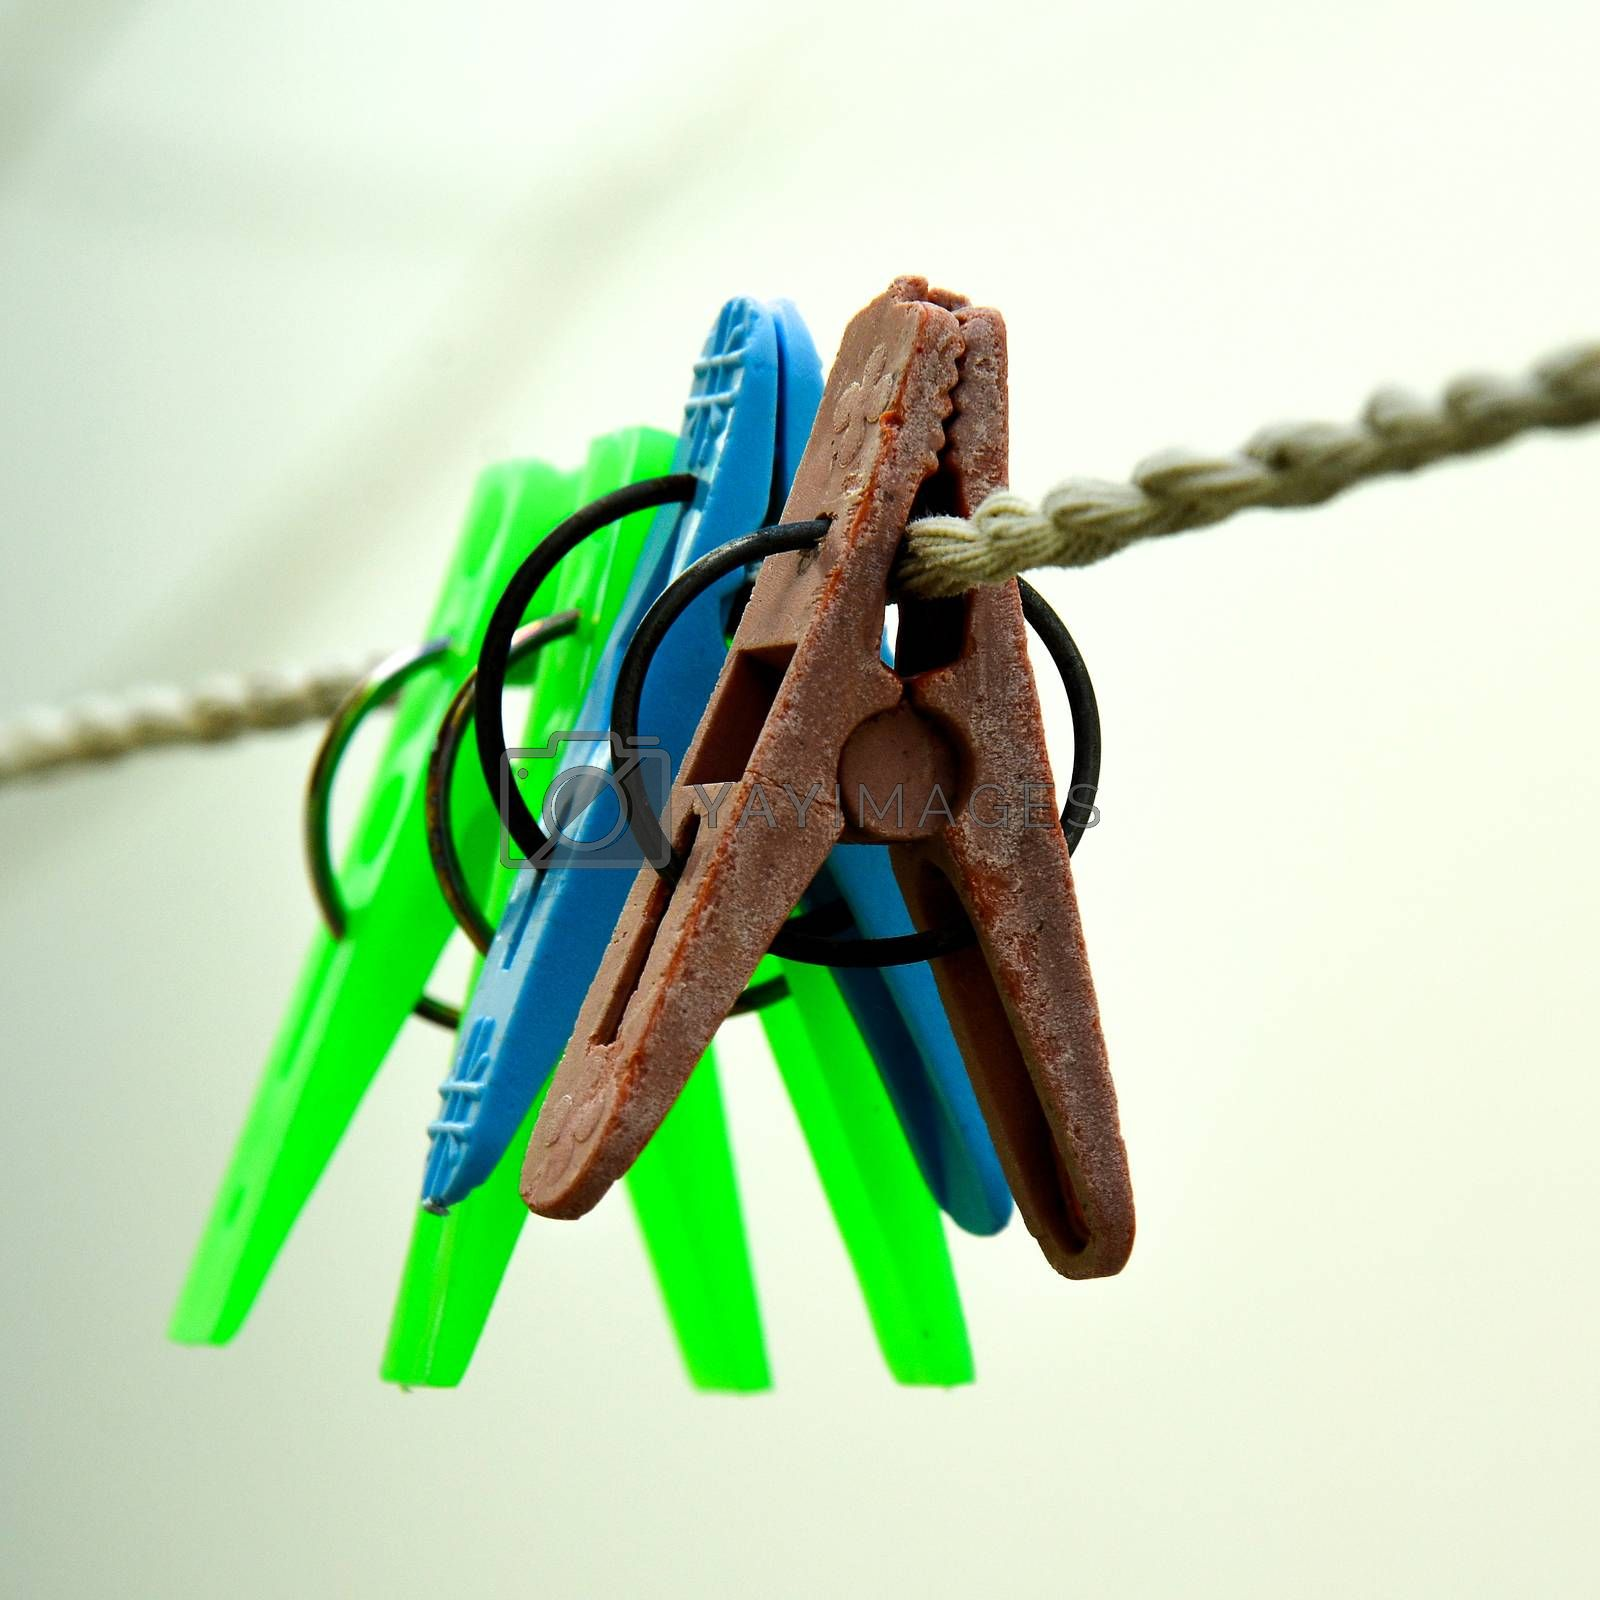 Close up of some cloth hanging clips